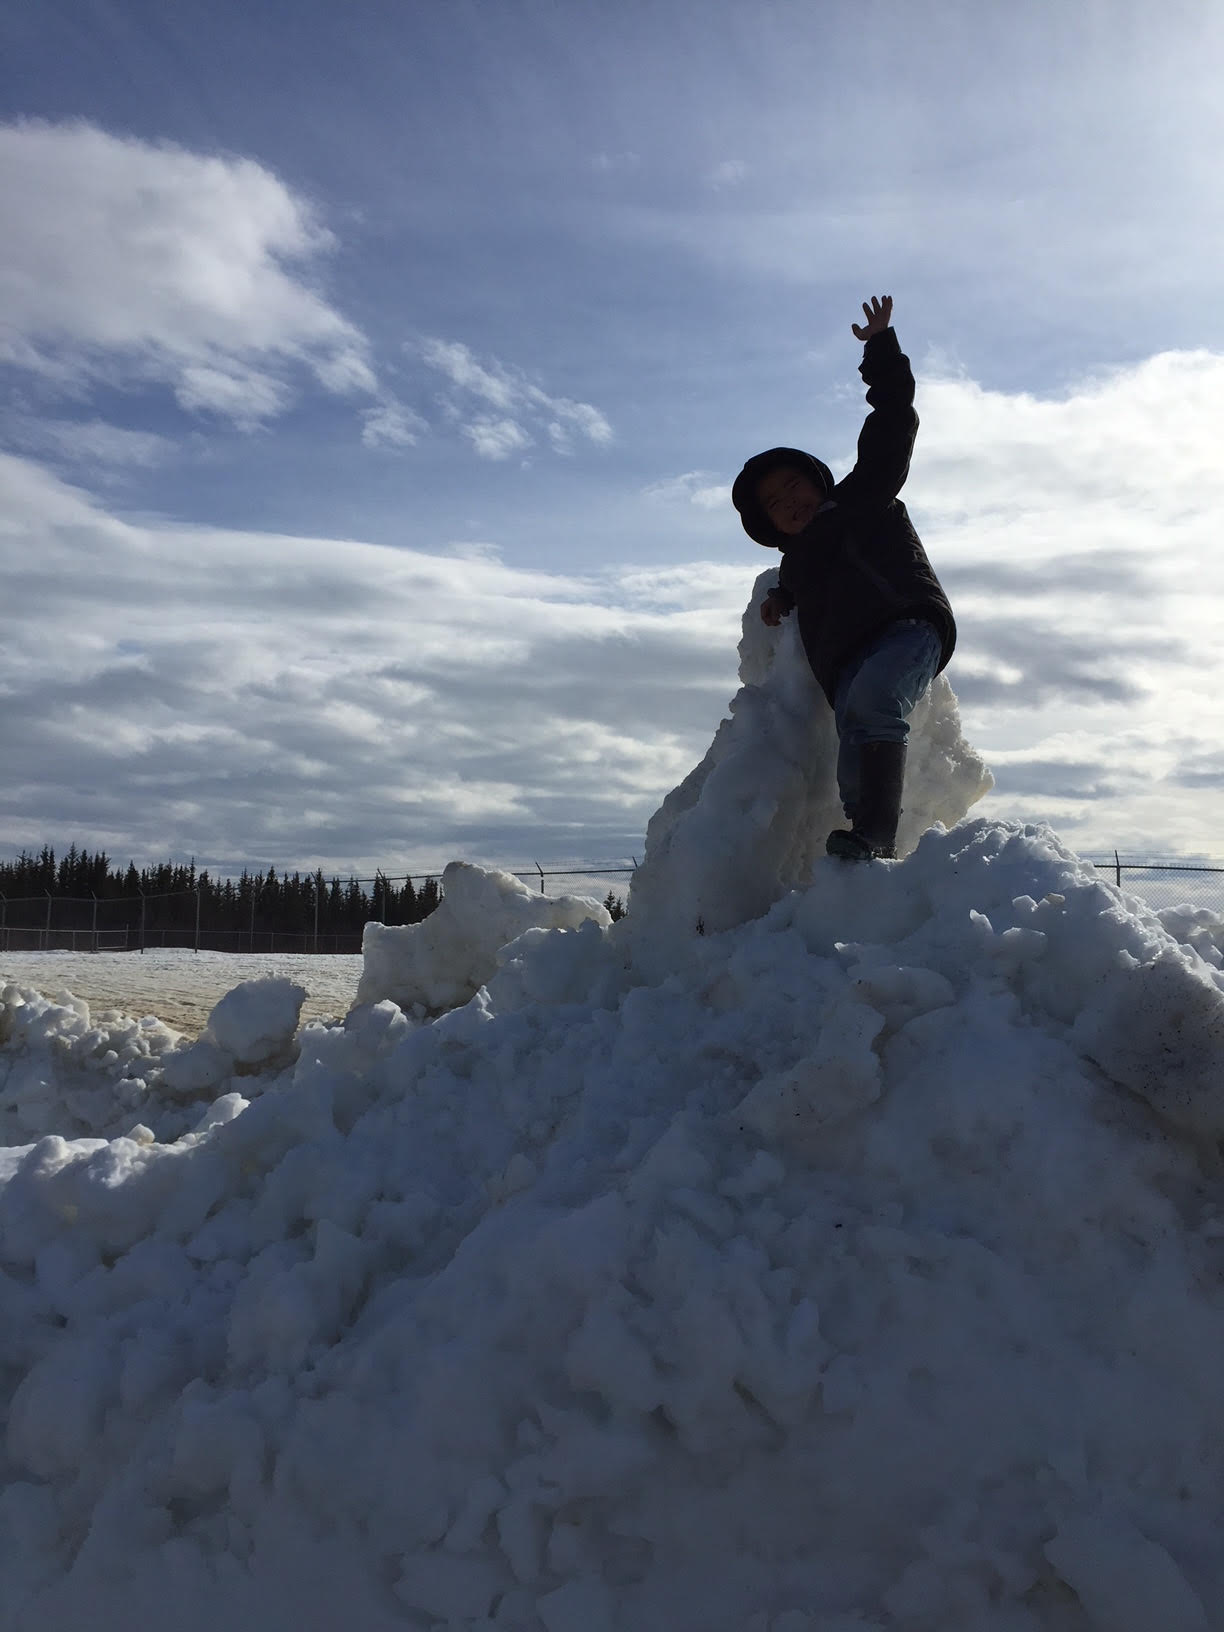 JR climbing on top of the snow for the directors